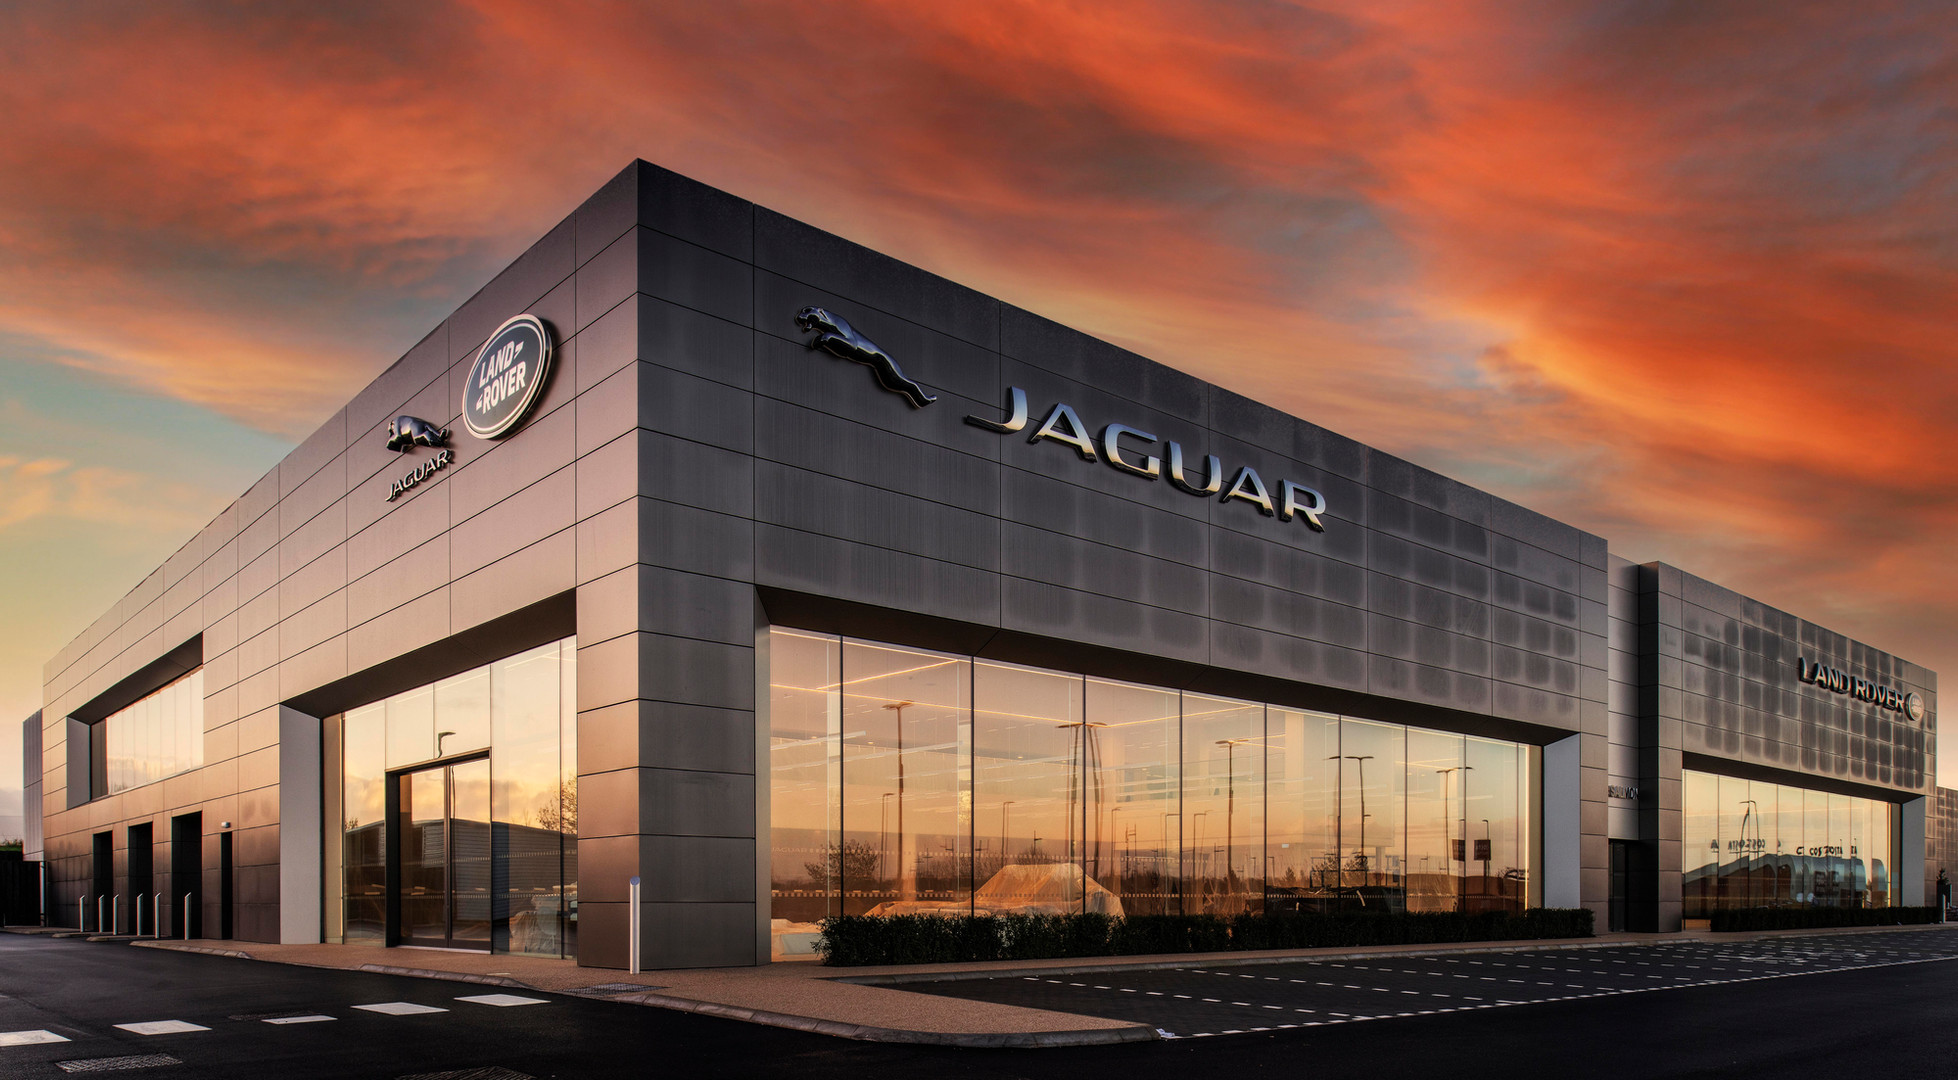 Jaguar & LandRover showroom